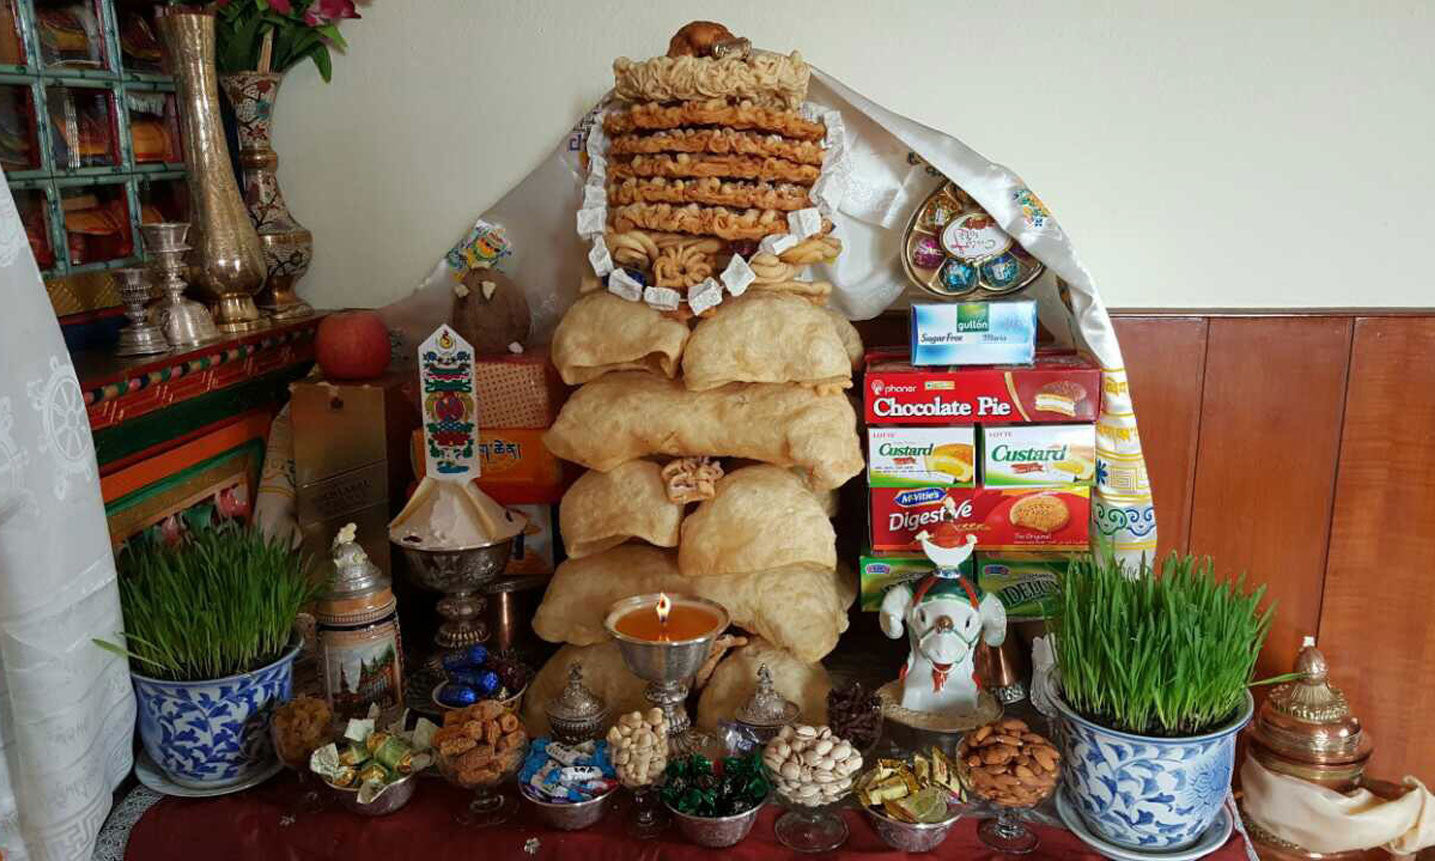 Gyalpo losar sherpa adventure gear a family altar decorated with khapse cakes cookies candies breads and fruits m4hsunfo